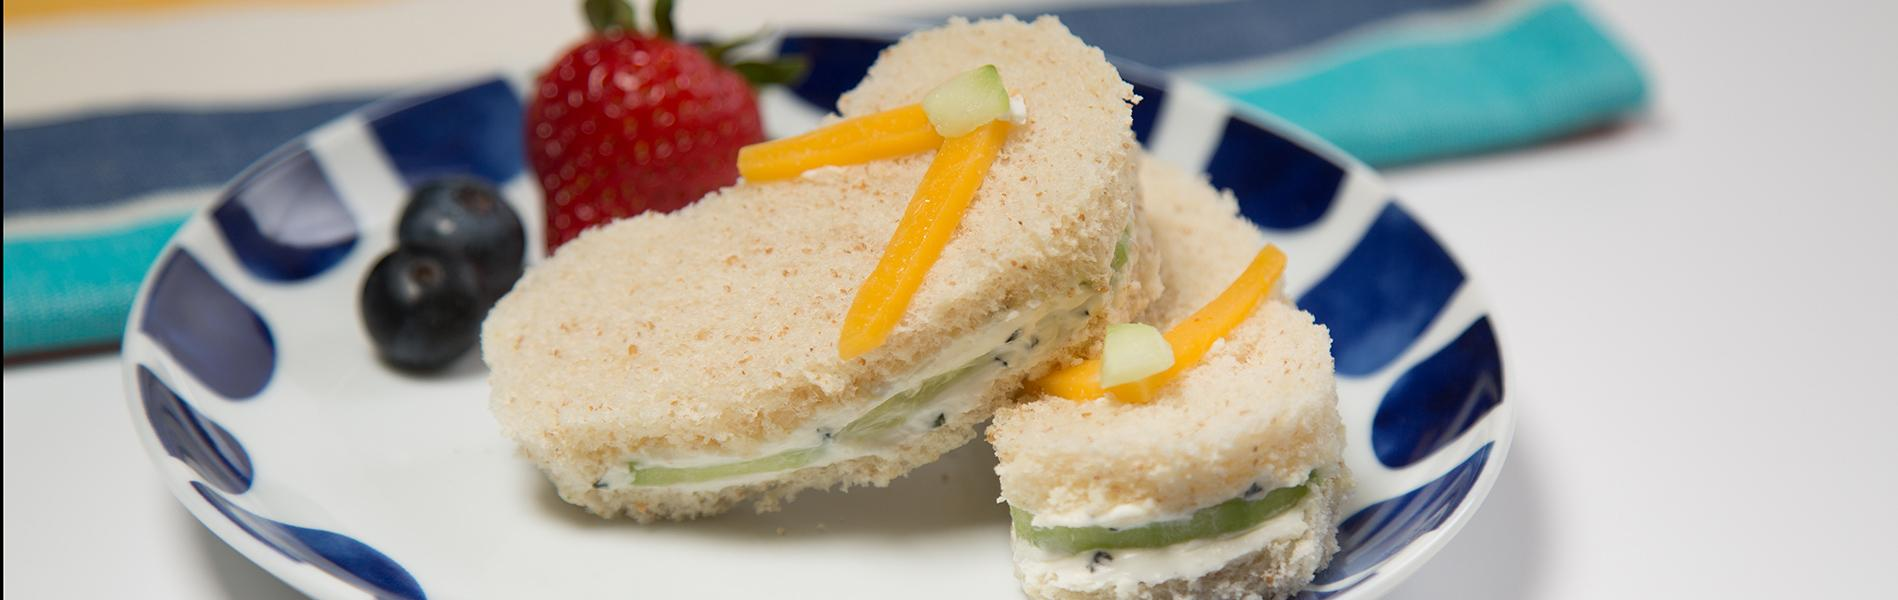 Cucumber and cream cheese sandwich shaped like sandals